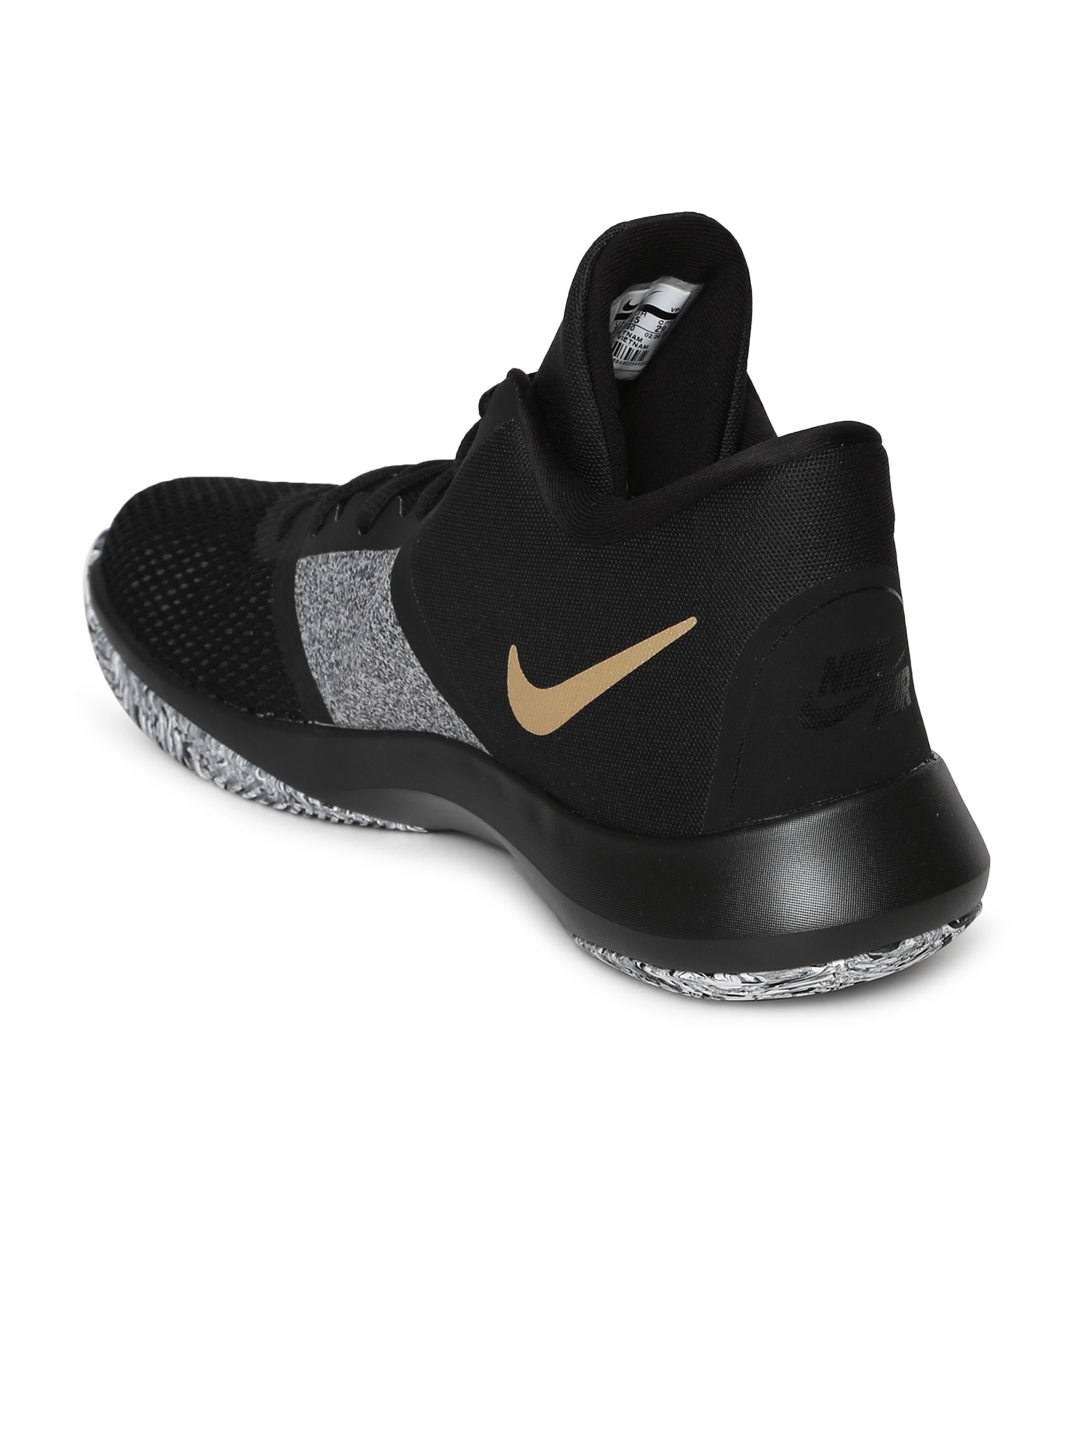 1276a3ae6fdaaa Buy Nike Men Black Air Precision II Basketball Shoes - Sports Shoes ...